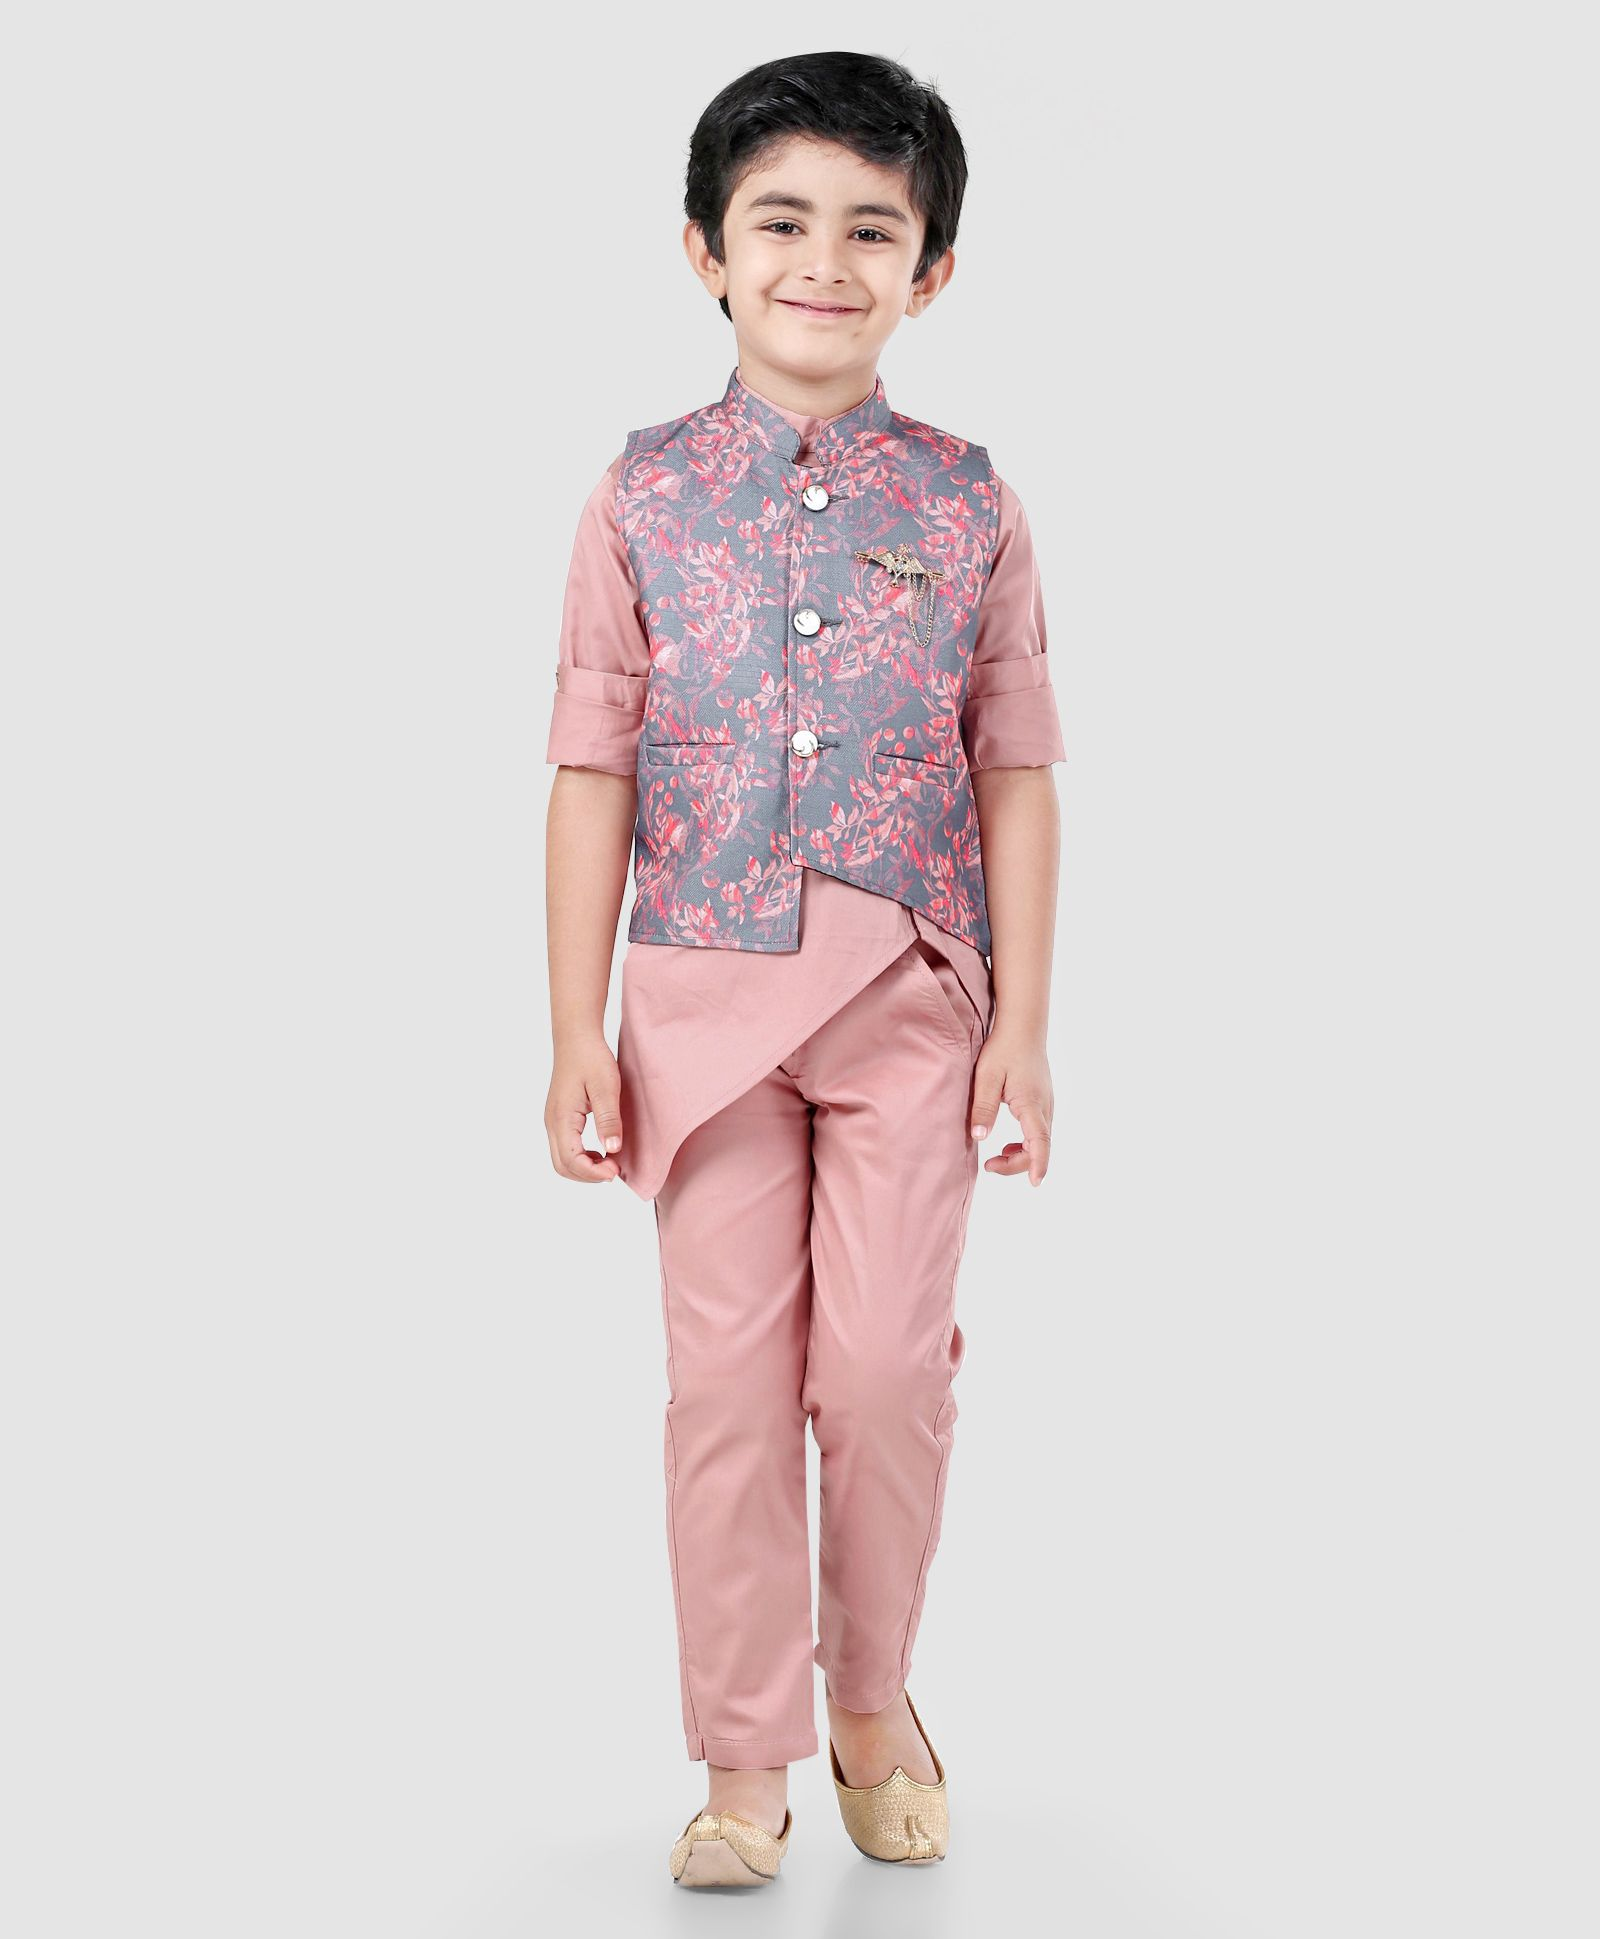 e7497bdf327 Dapper Dudes Full Sleeves Kurta With Flower Print Jacket   Pajama Set -  Peach